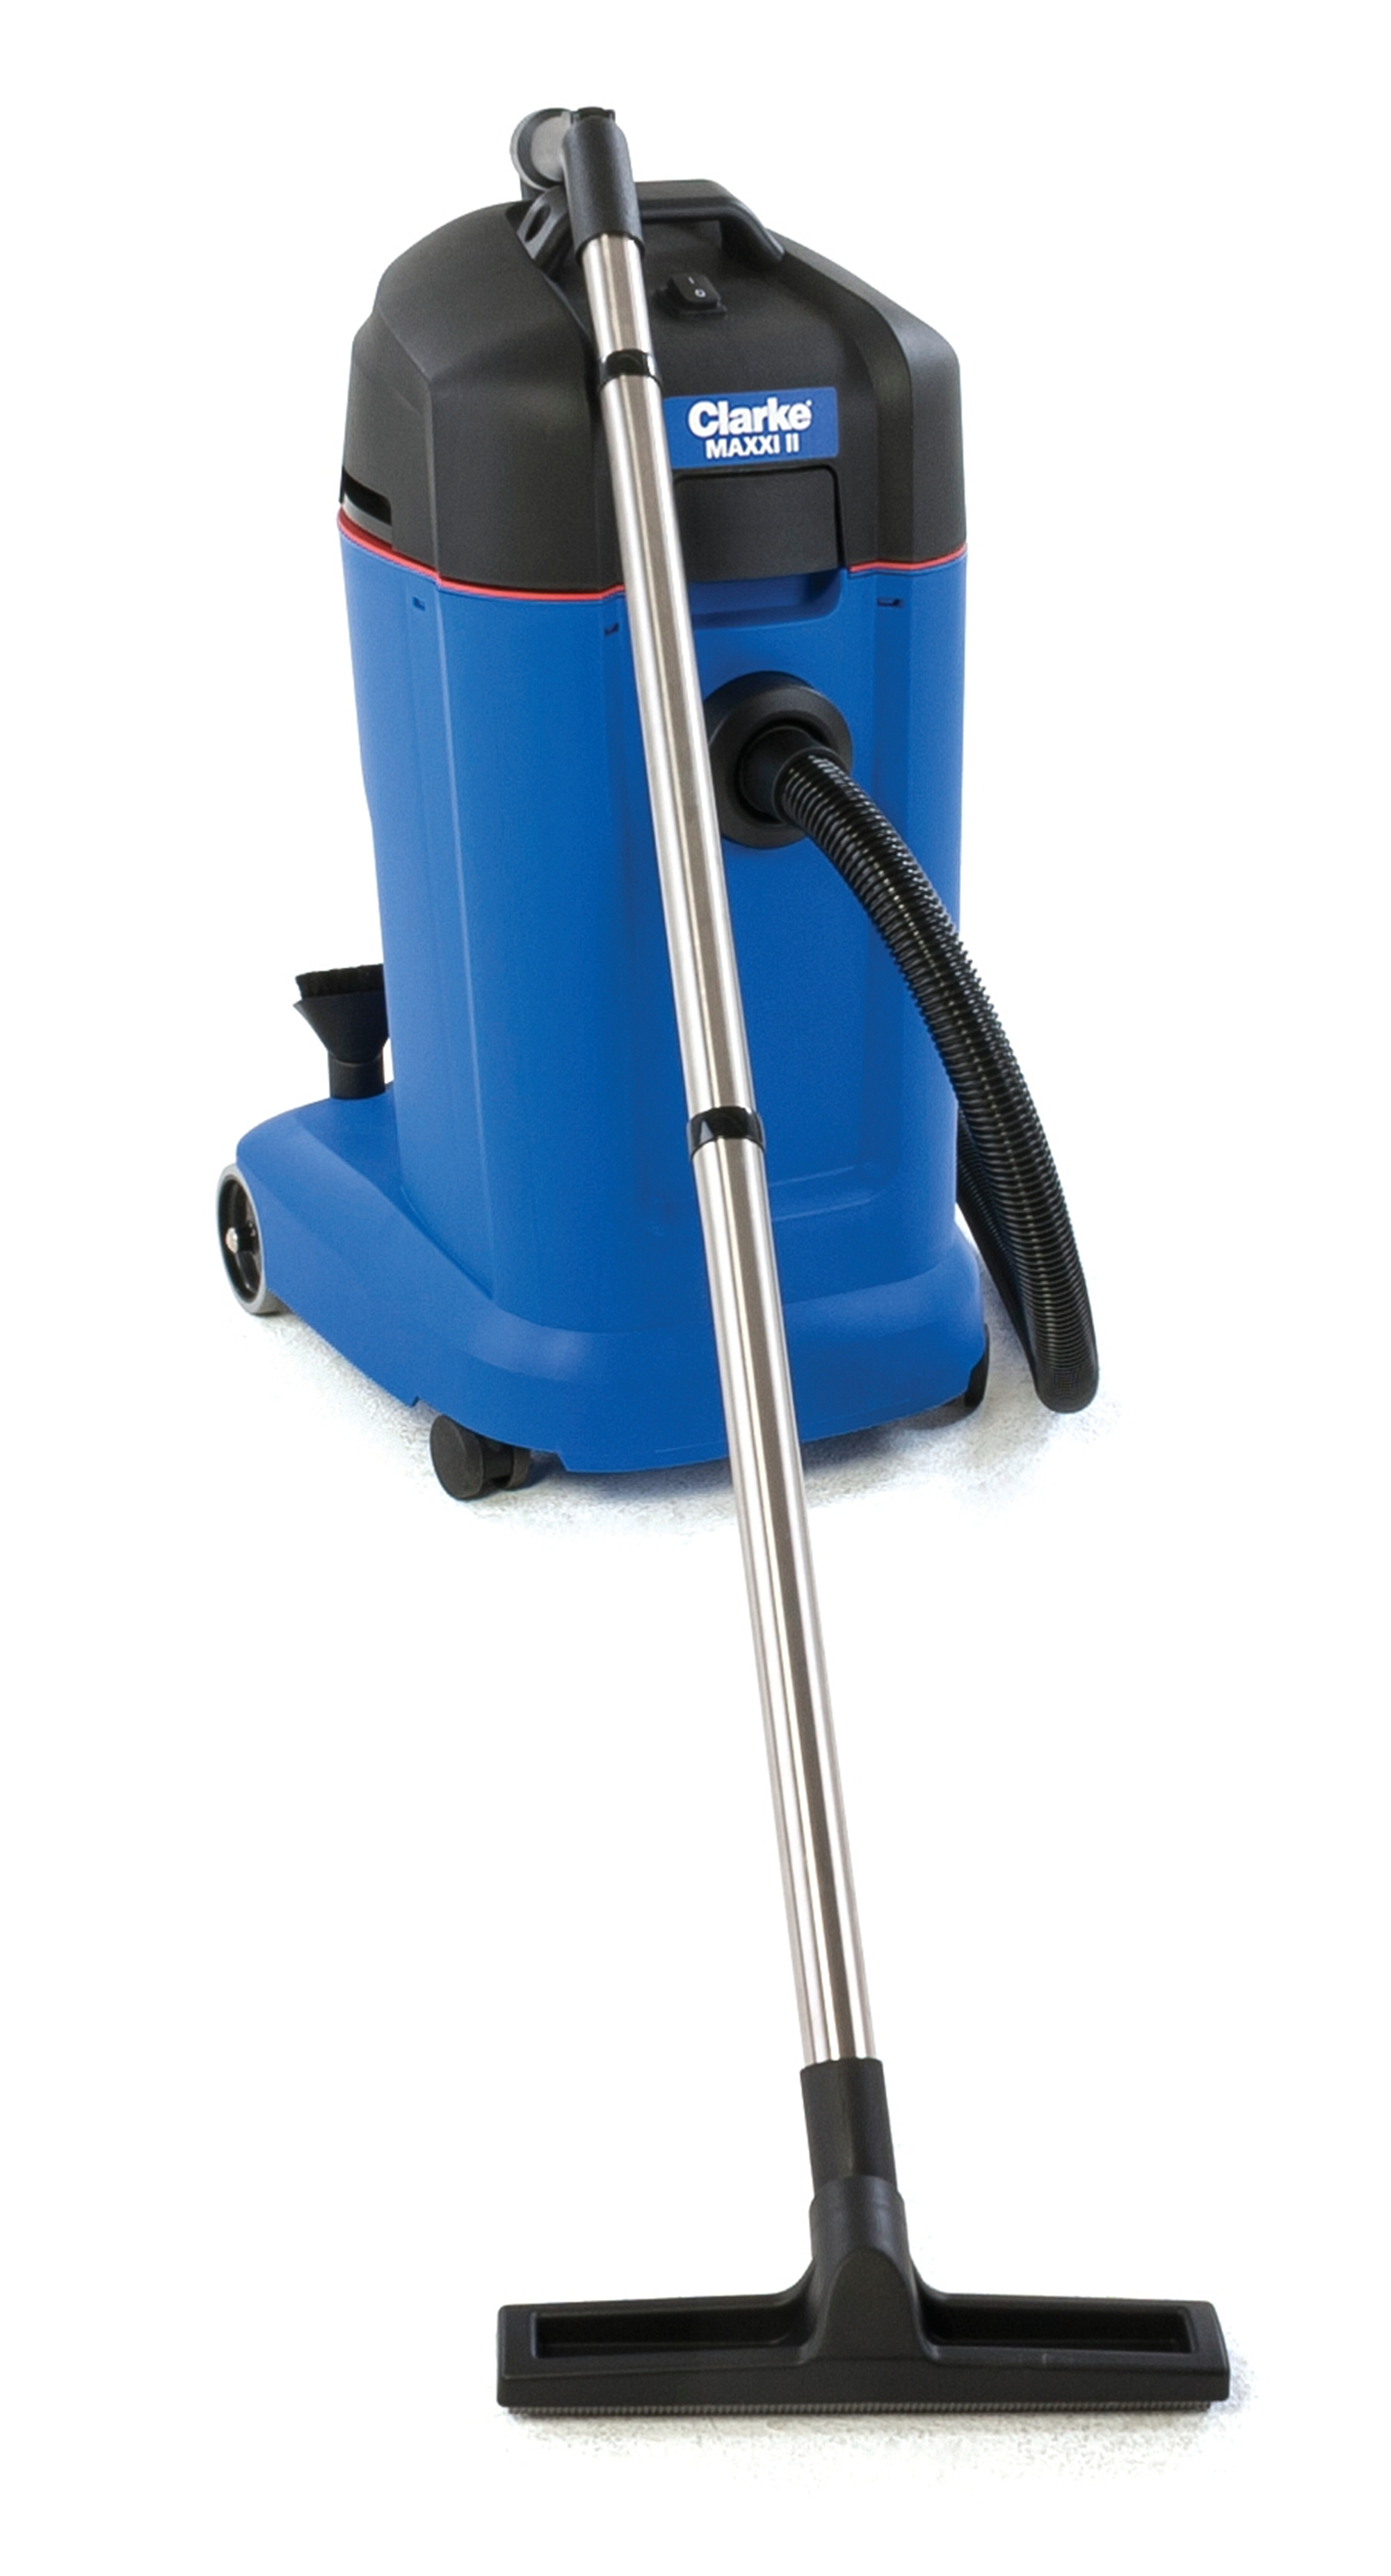 Product, Vacuum cleaners, Commercial vacuum cleaners, Wet and dry vacuum cleaners, Nilfisk, MAXXI 75 FM SQUEEGEE